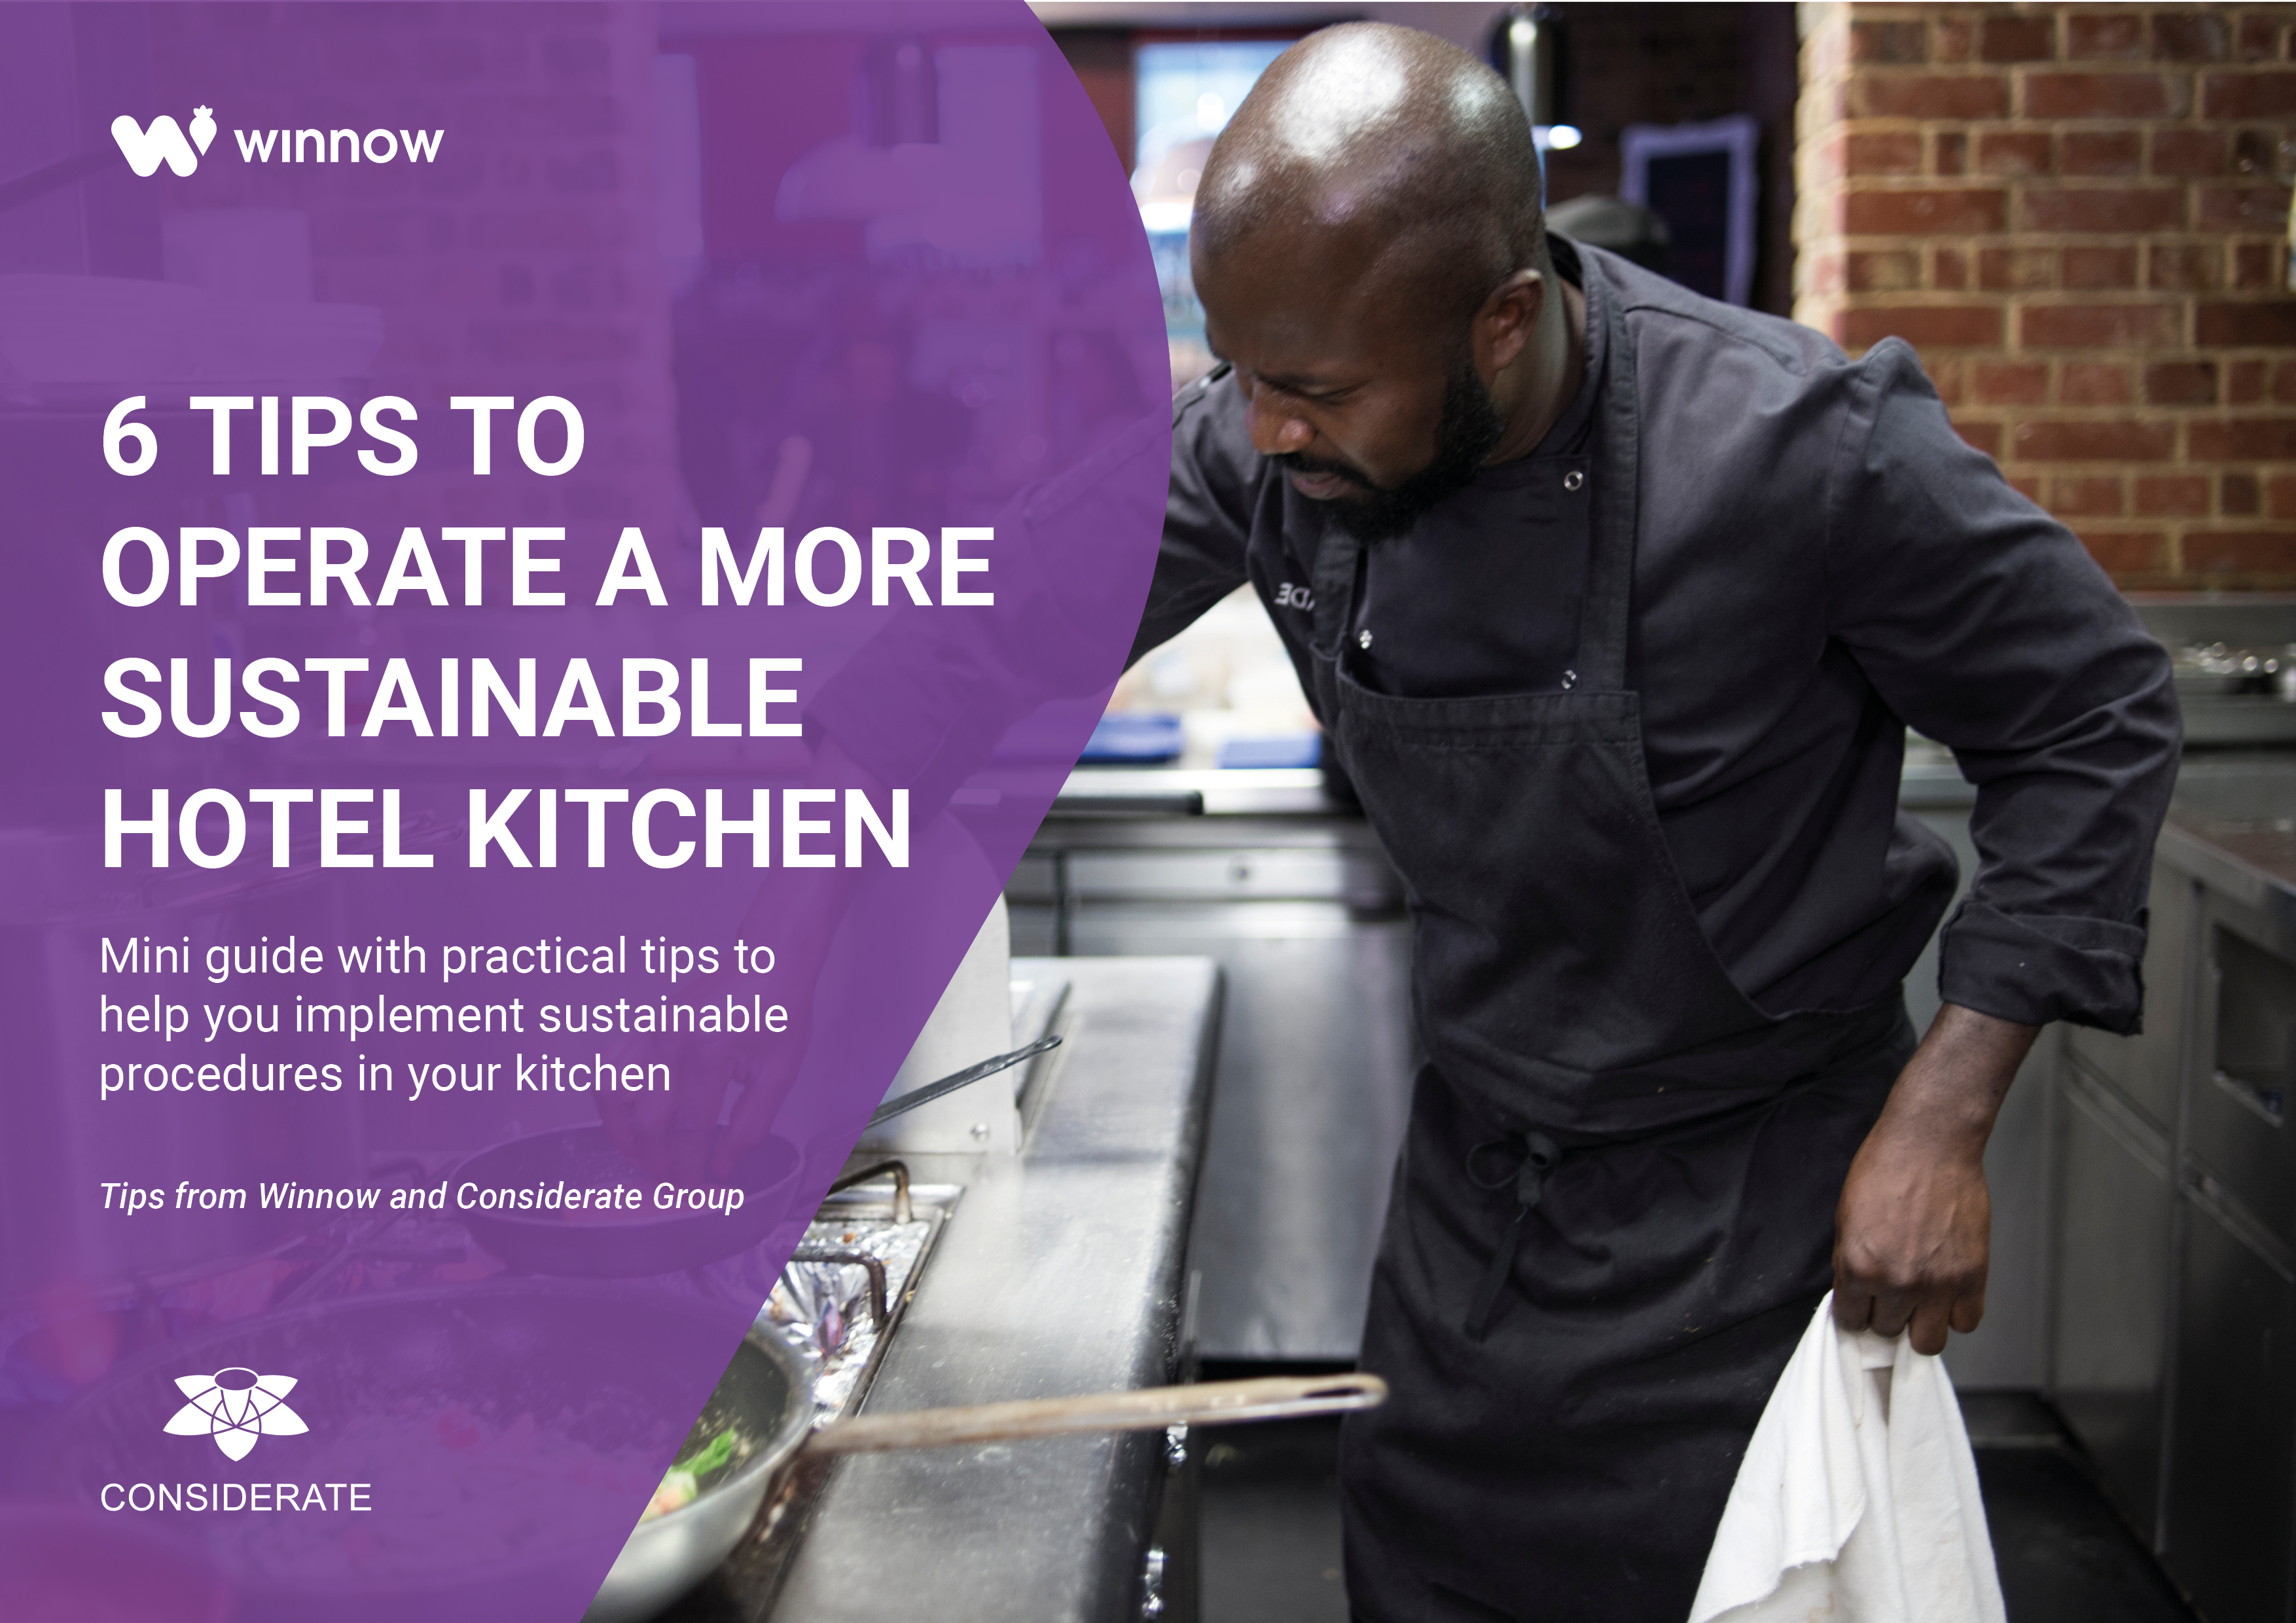 6 Tips to operate a more sustainable hotel kitchen